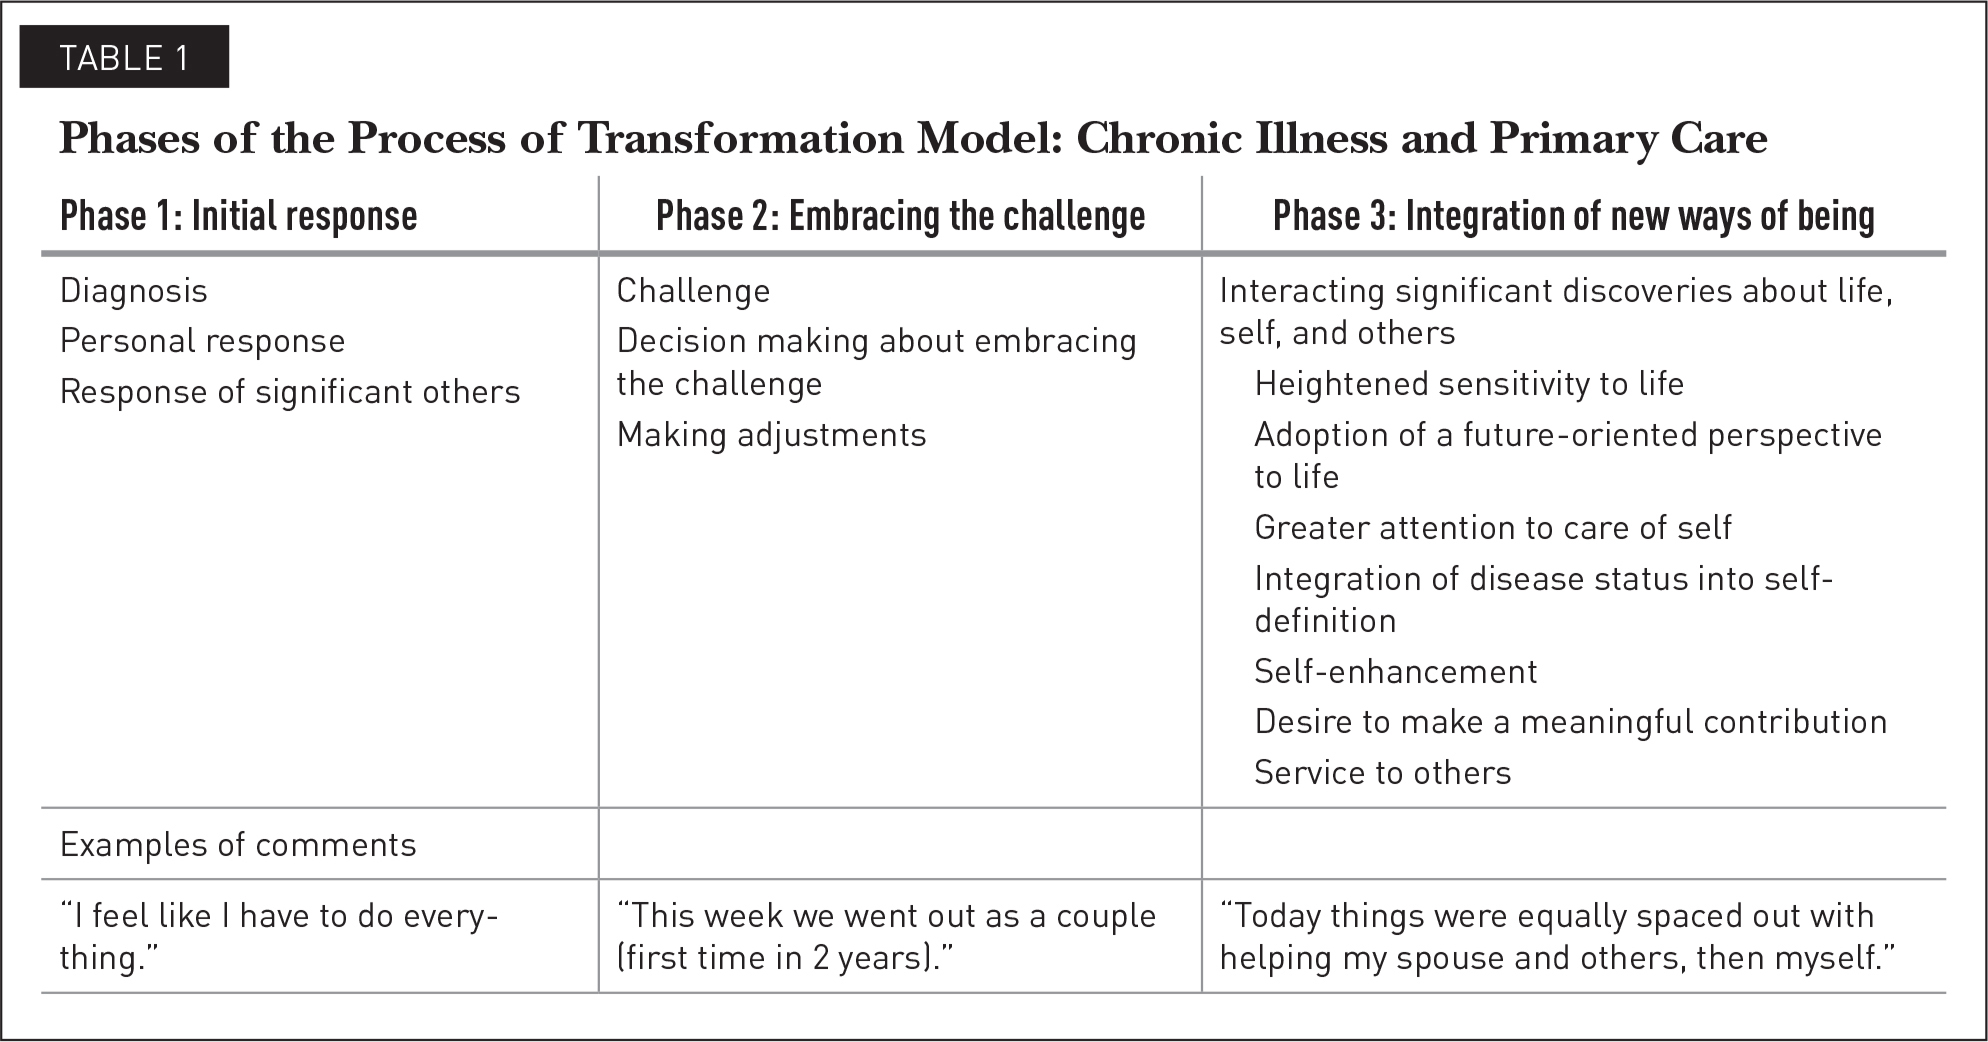 Phases of the Process of Transformation Model: Chronic Illness and Primary Care